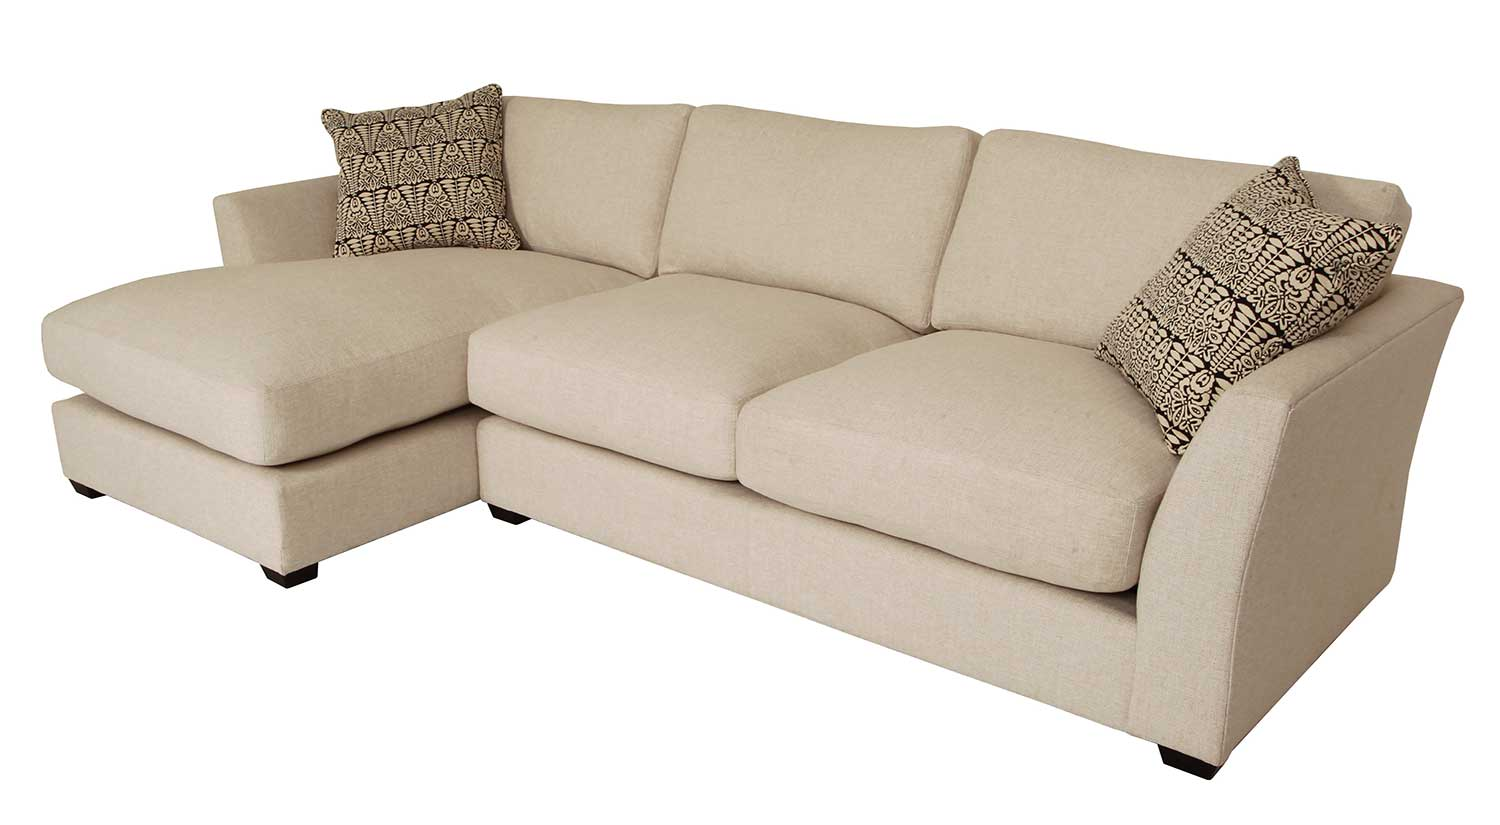 Circle Furniture Liam Sectional Chaise Sofas Comfortable